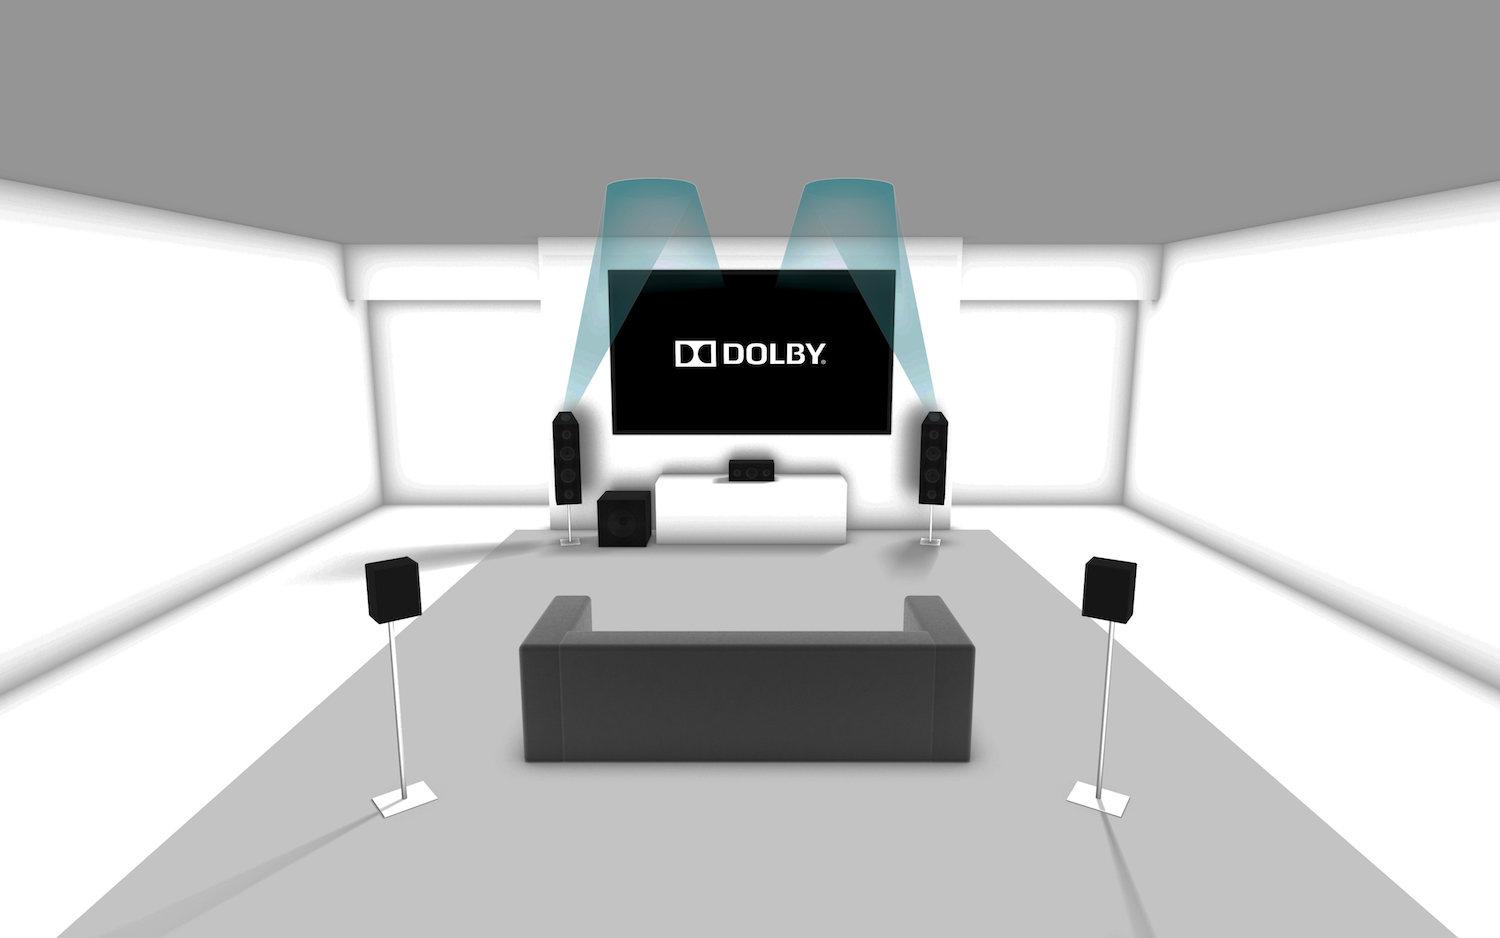 Dolby Atmos 5.1.2